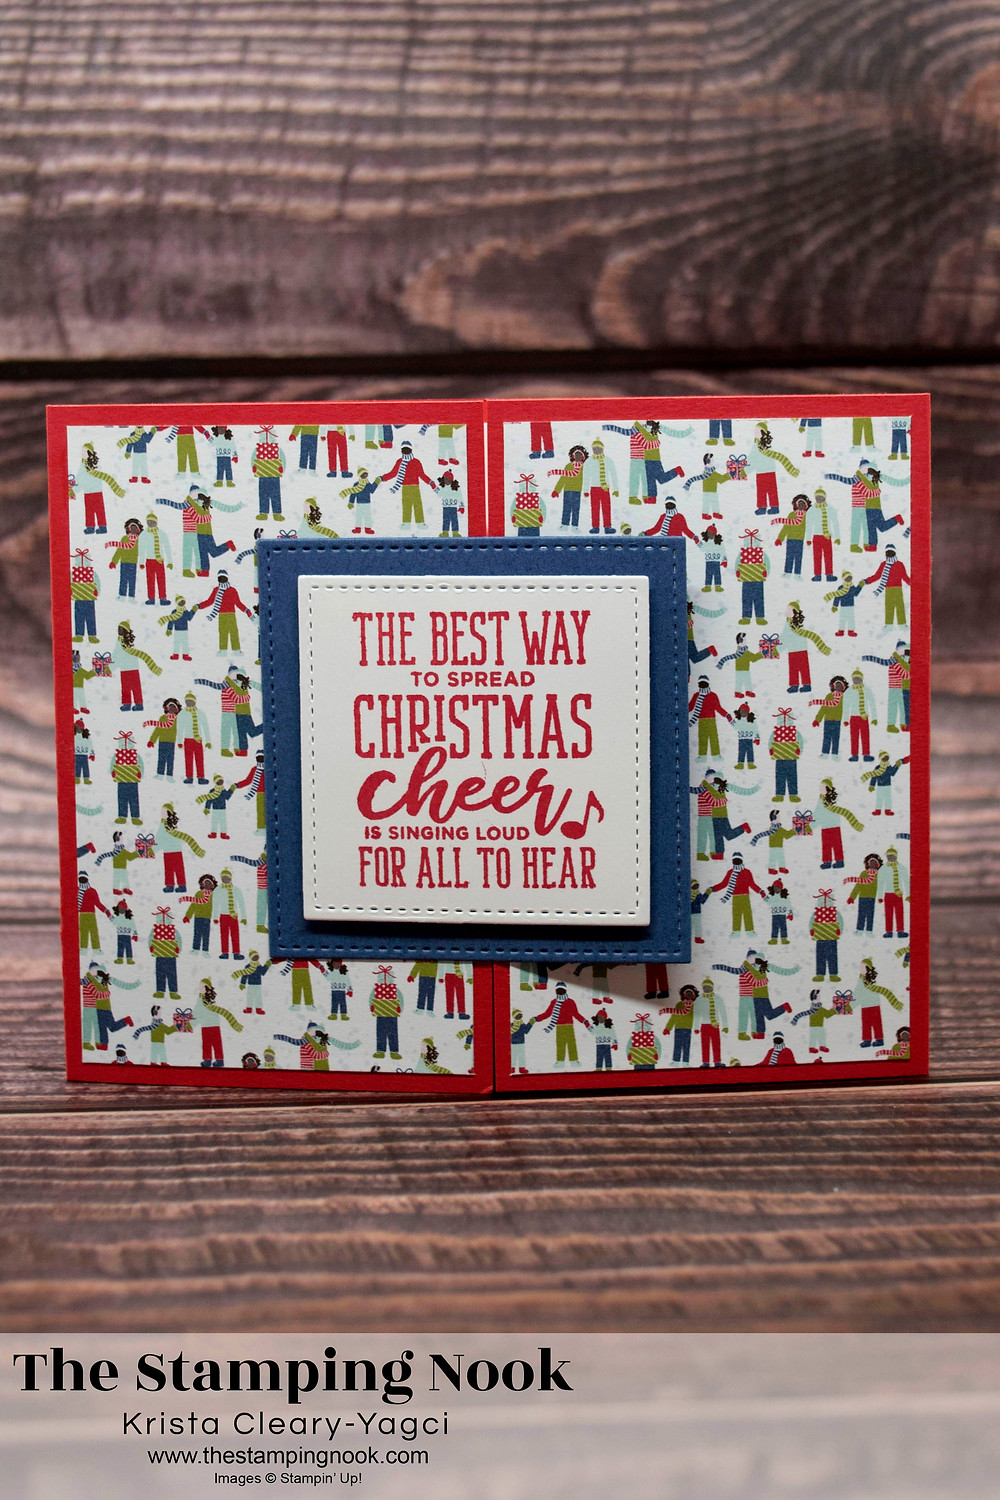 stampin-up-Christmas-Means More-card-krista-cleary-yagci-the-stamping-nook-4